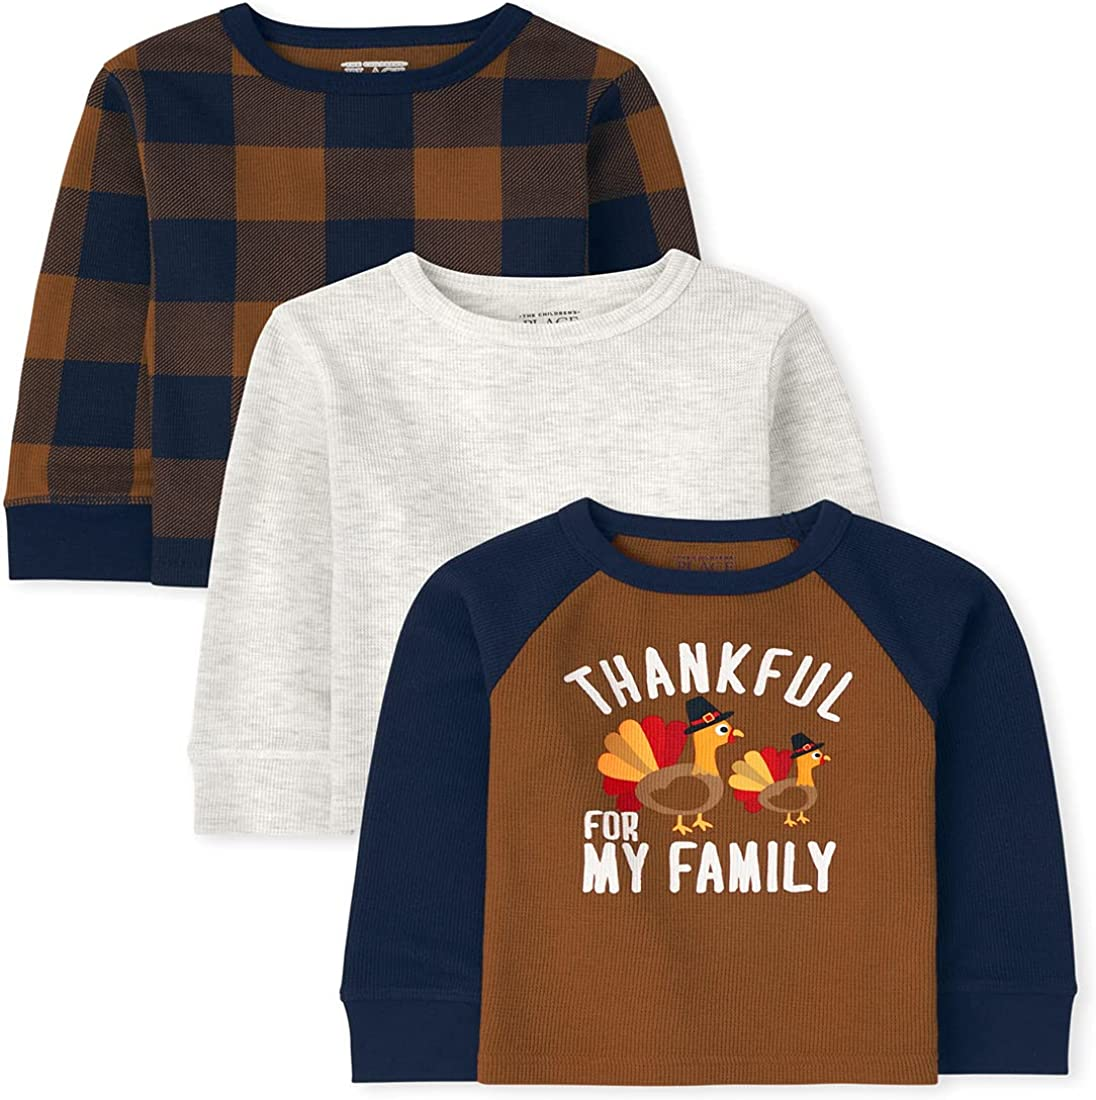 The Children's Place and Toddler Boy Long Sleeve Harvest Thermal Top 3-Pack